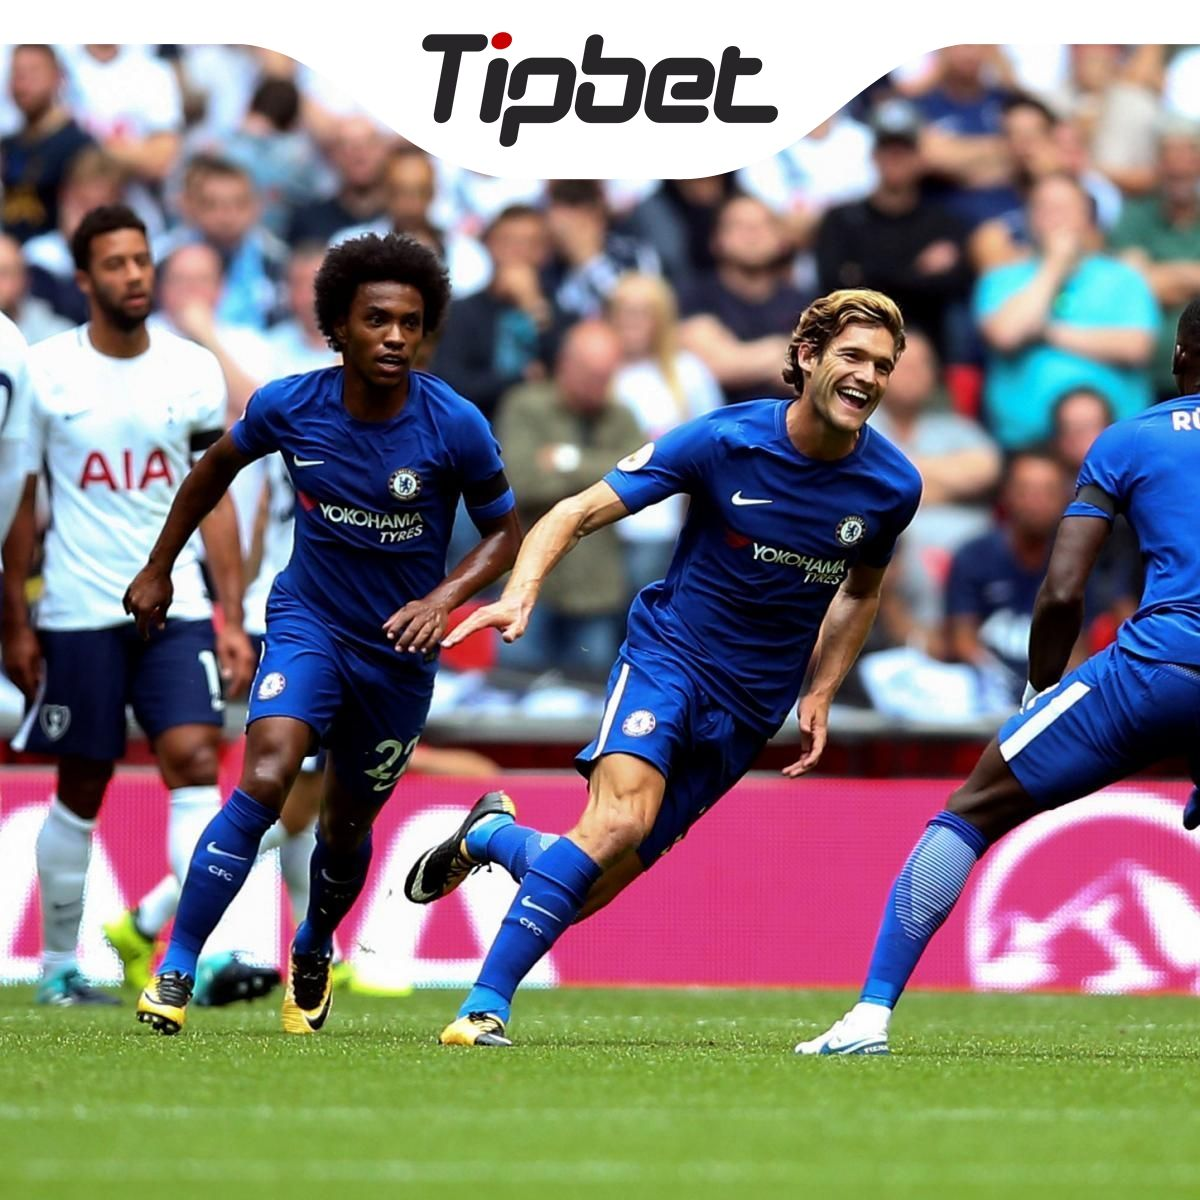 Live match epl online betting betting summary volume